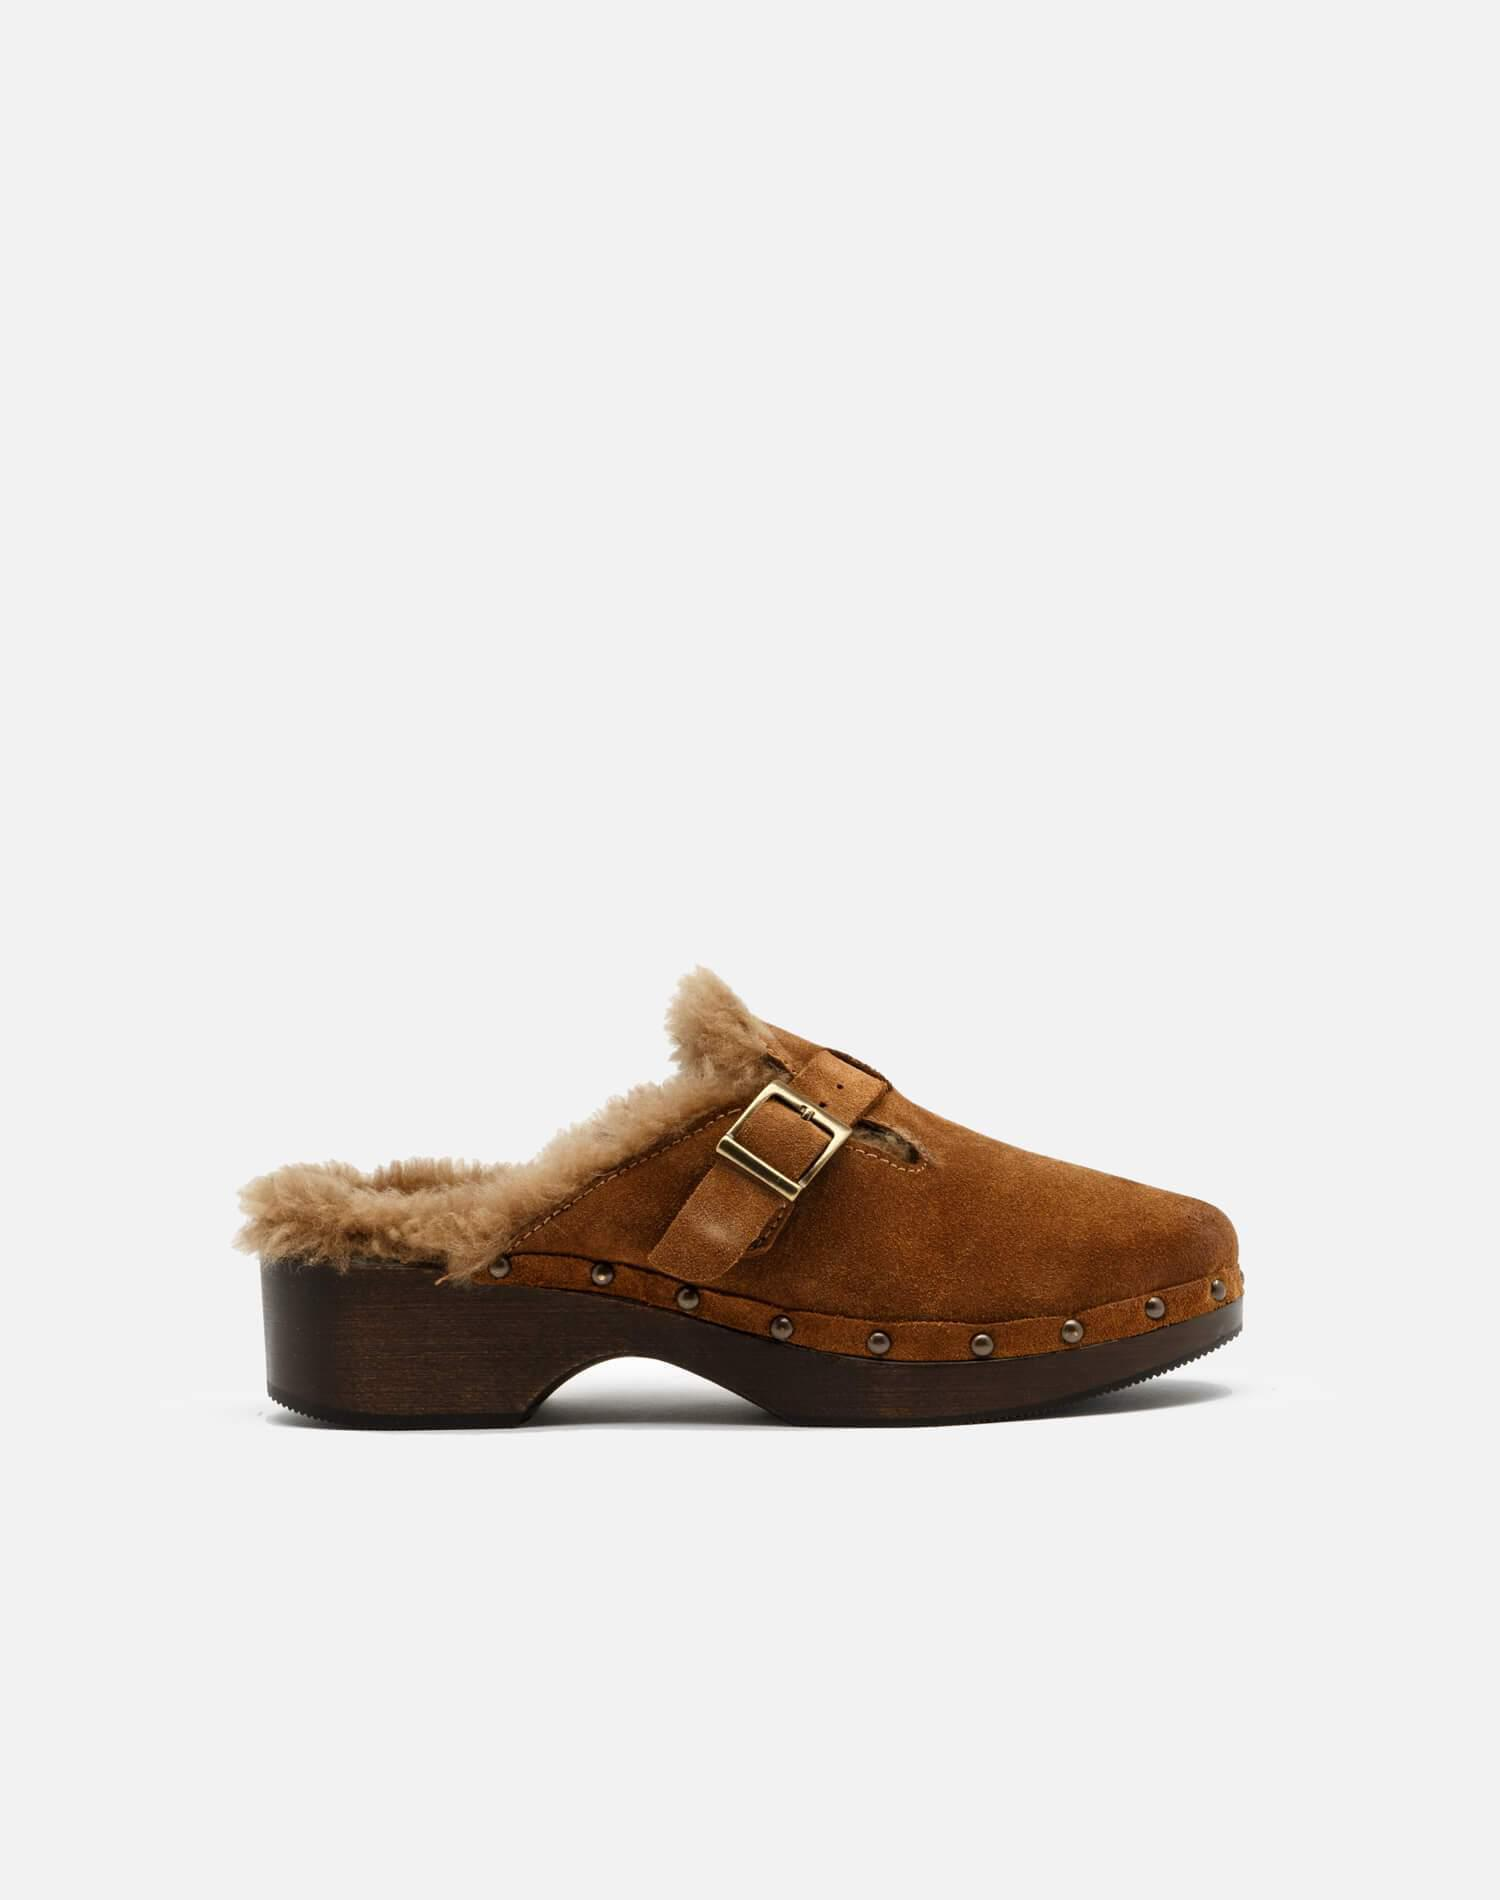 70s Shearling Clog - Cognac Suede and Shearling